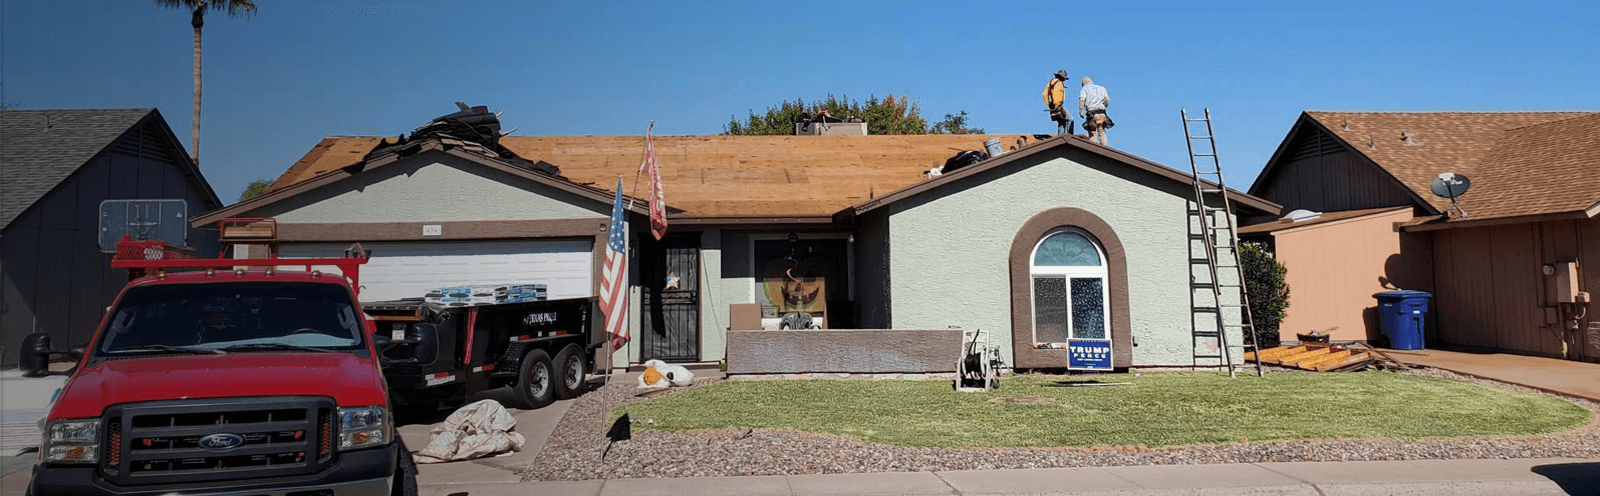 Patriot Construction and Consulting Services Covering Arizona